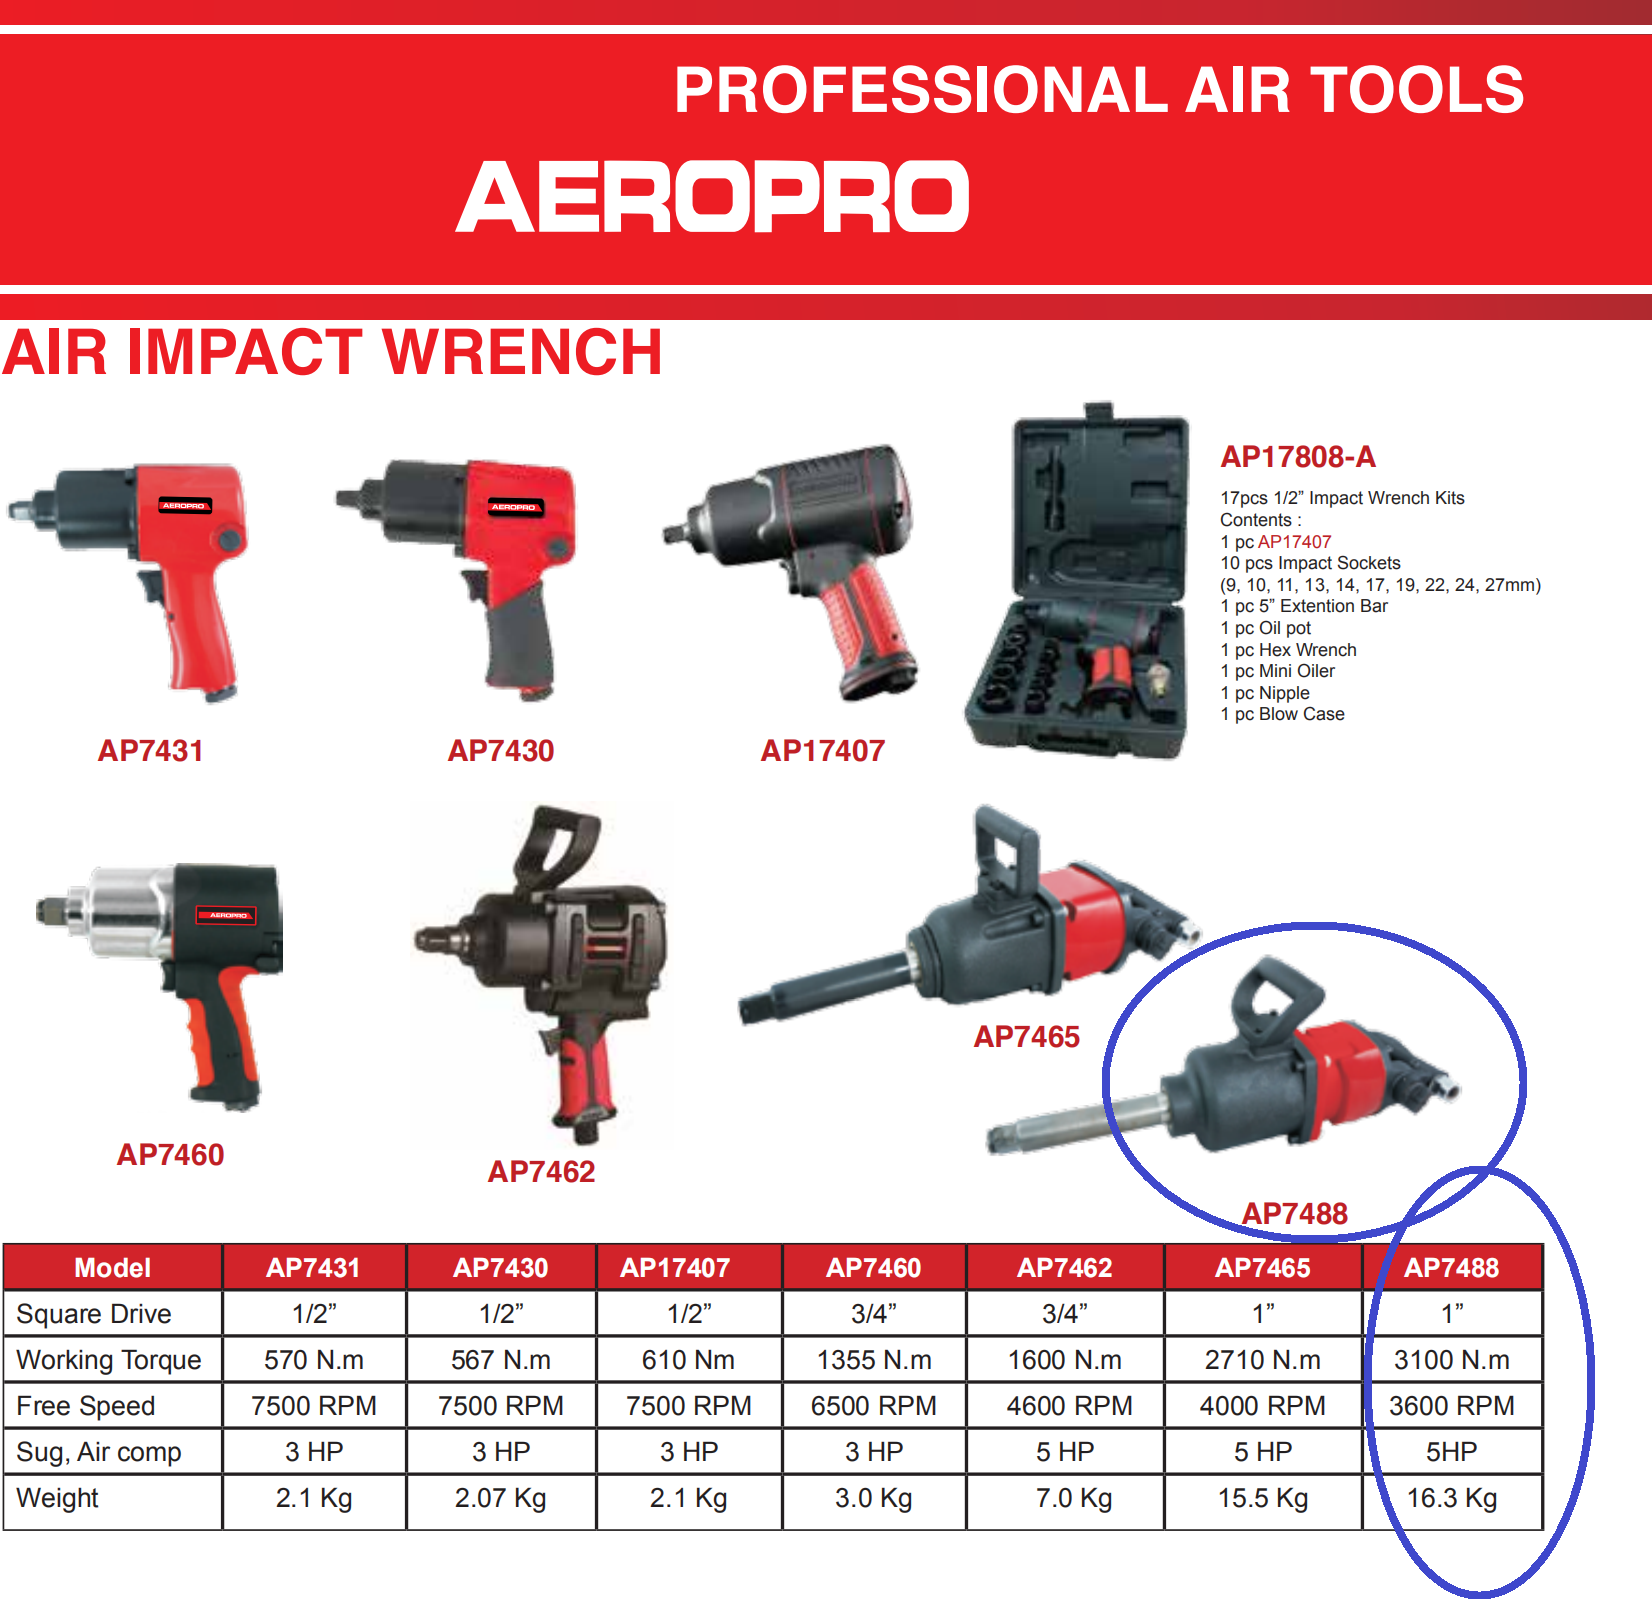 """1"""" inch air compressor high pressure press twin hammer impact wrench torque socket connector connect tire tyre lock fit hold holder drive drill machine jack gun handle hand power tool wheel nut lock roll roller machine in out grip hose handling tight auto"""